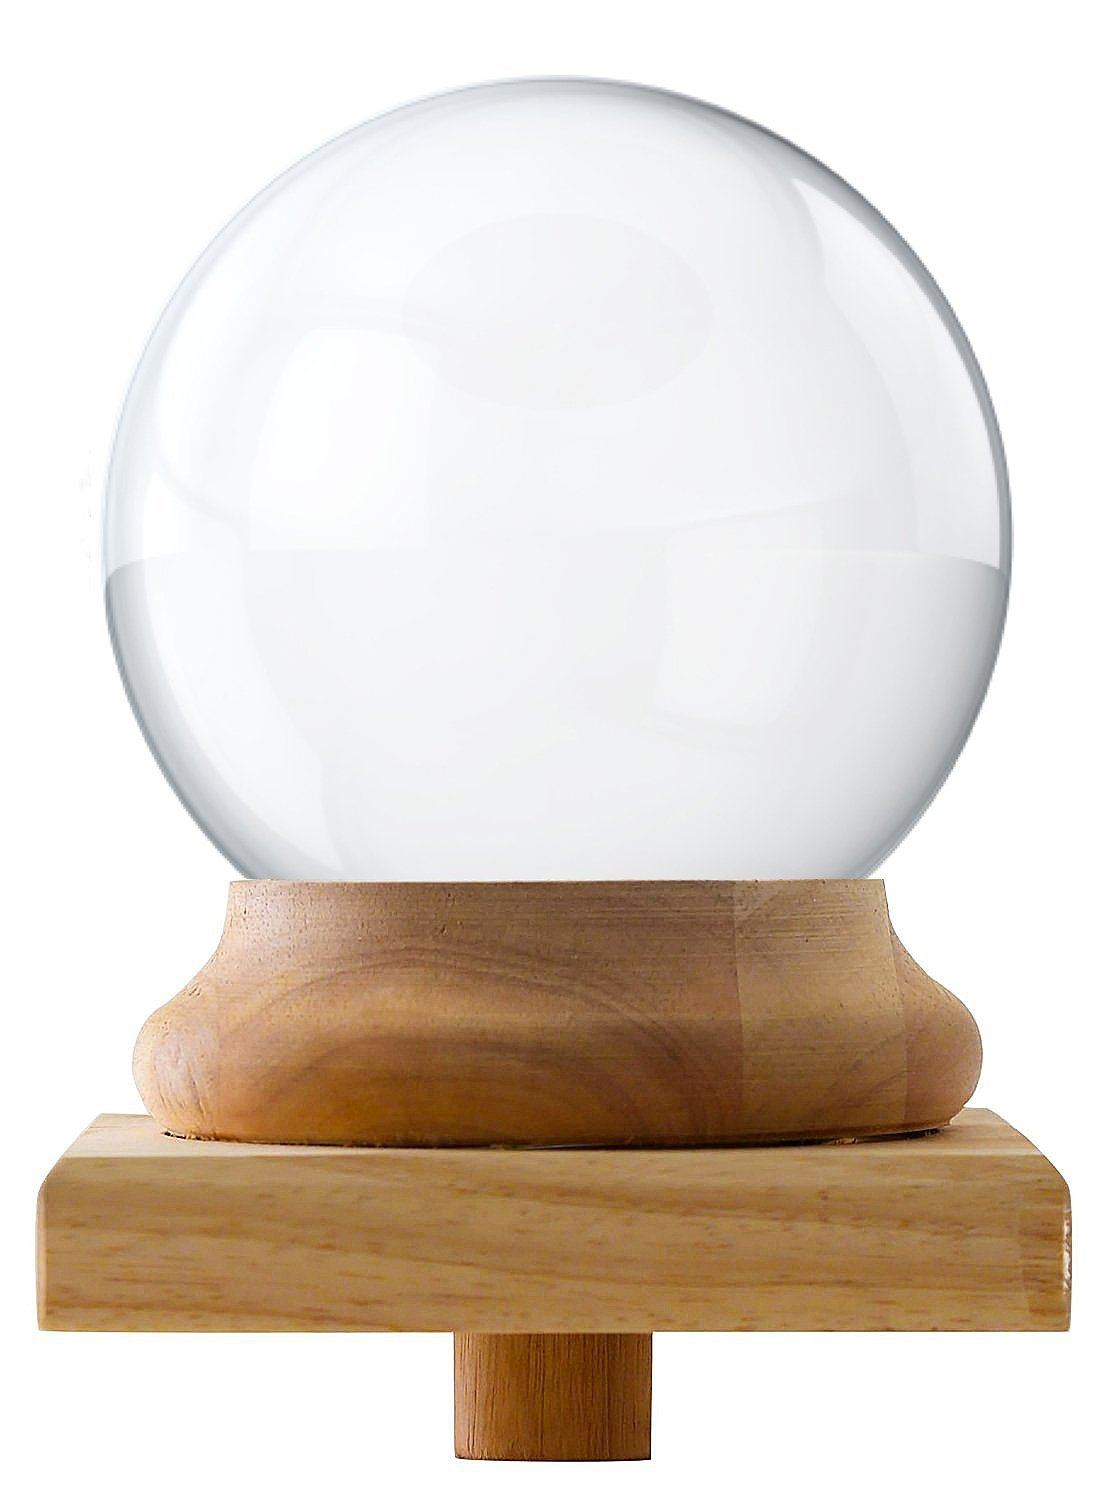 Amlong Crystal Newel Post Cap Finial - Crystal Ball 150mm (6 inch) Diameter by Amlong Crystal